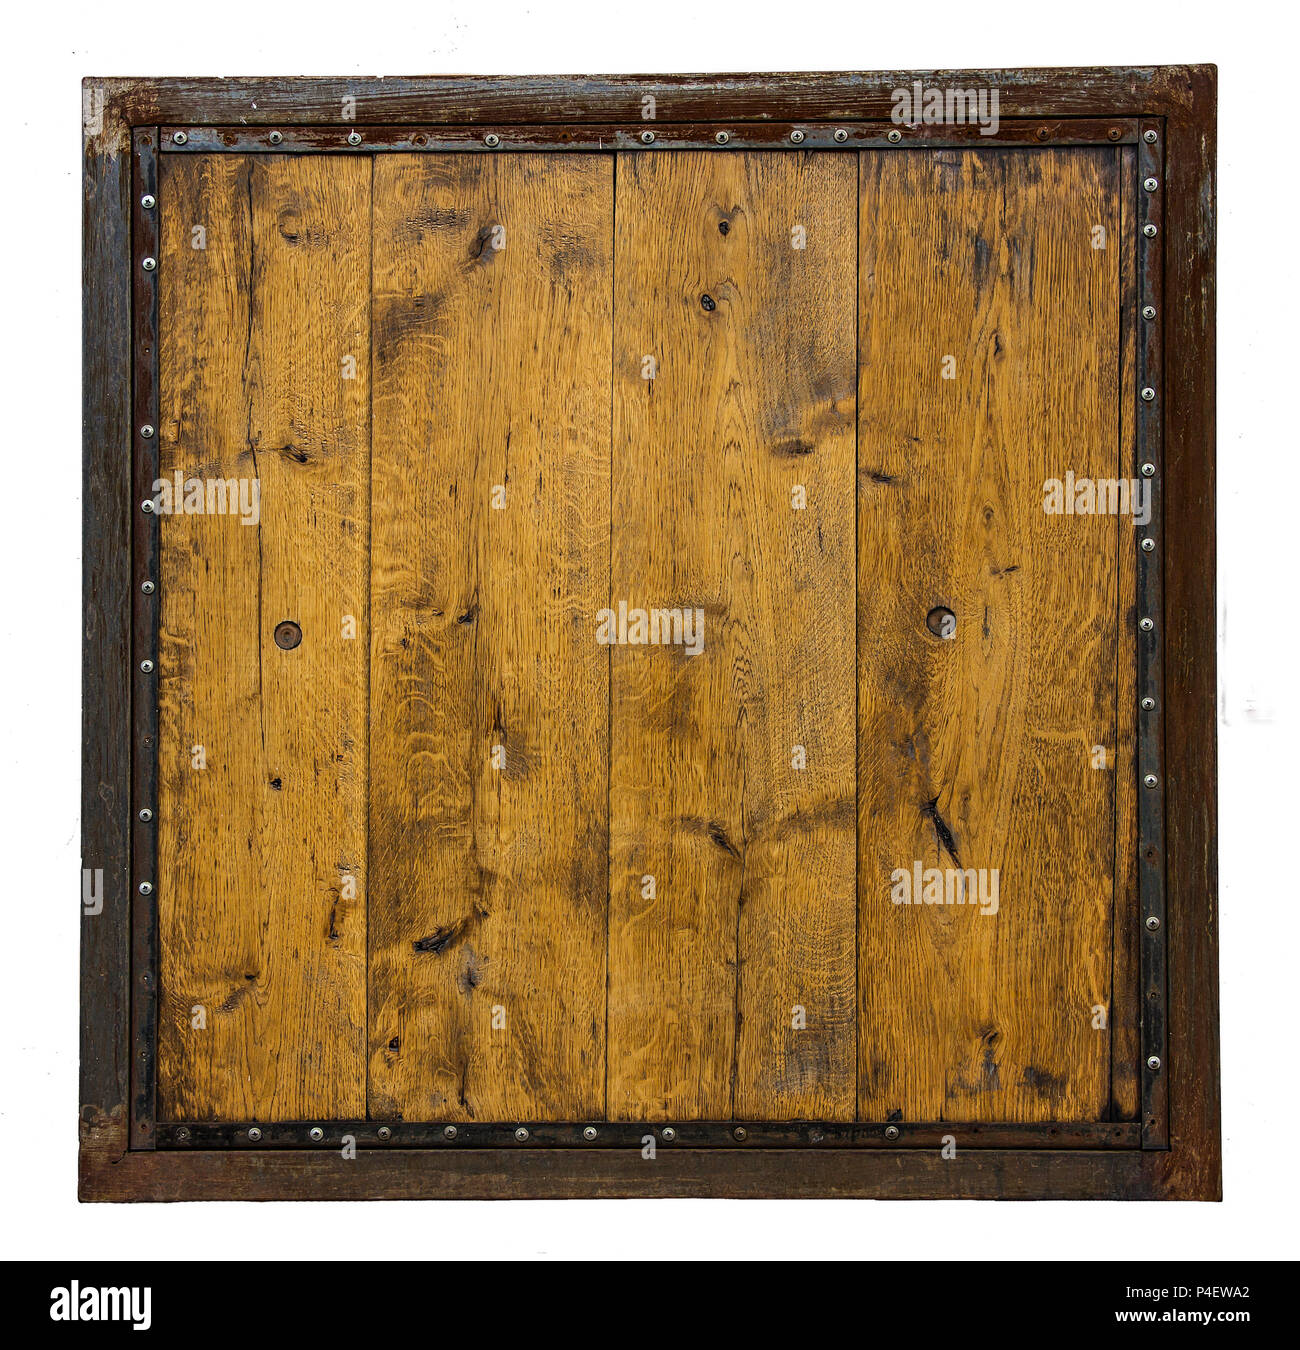 a wooden board made of wooden planks in a rusty metal frame with rivets isolated on white background - Stock Image